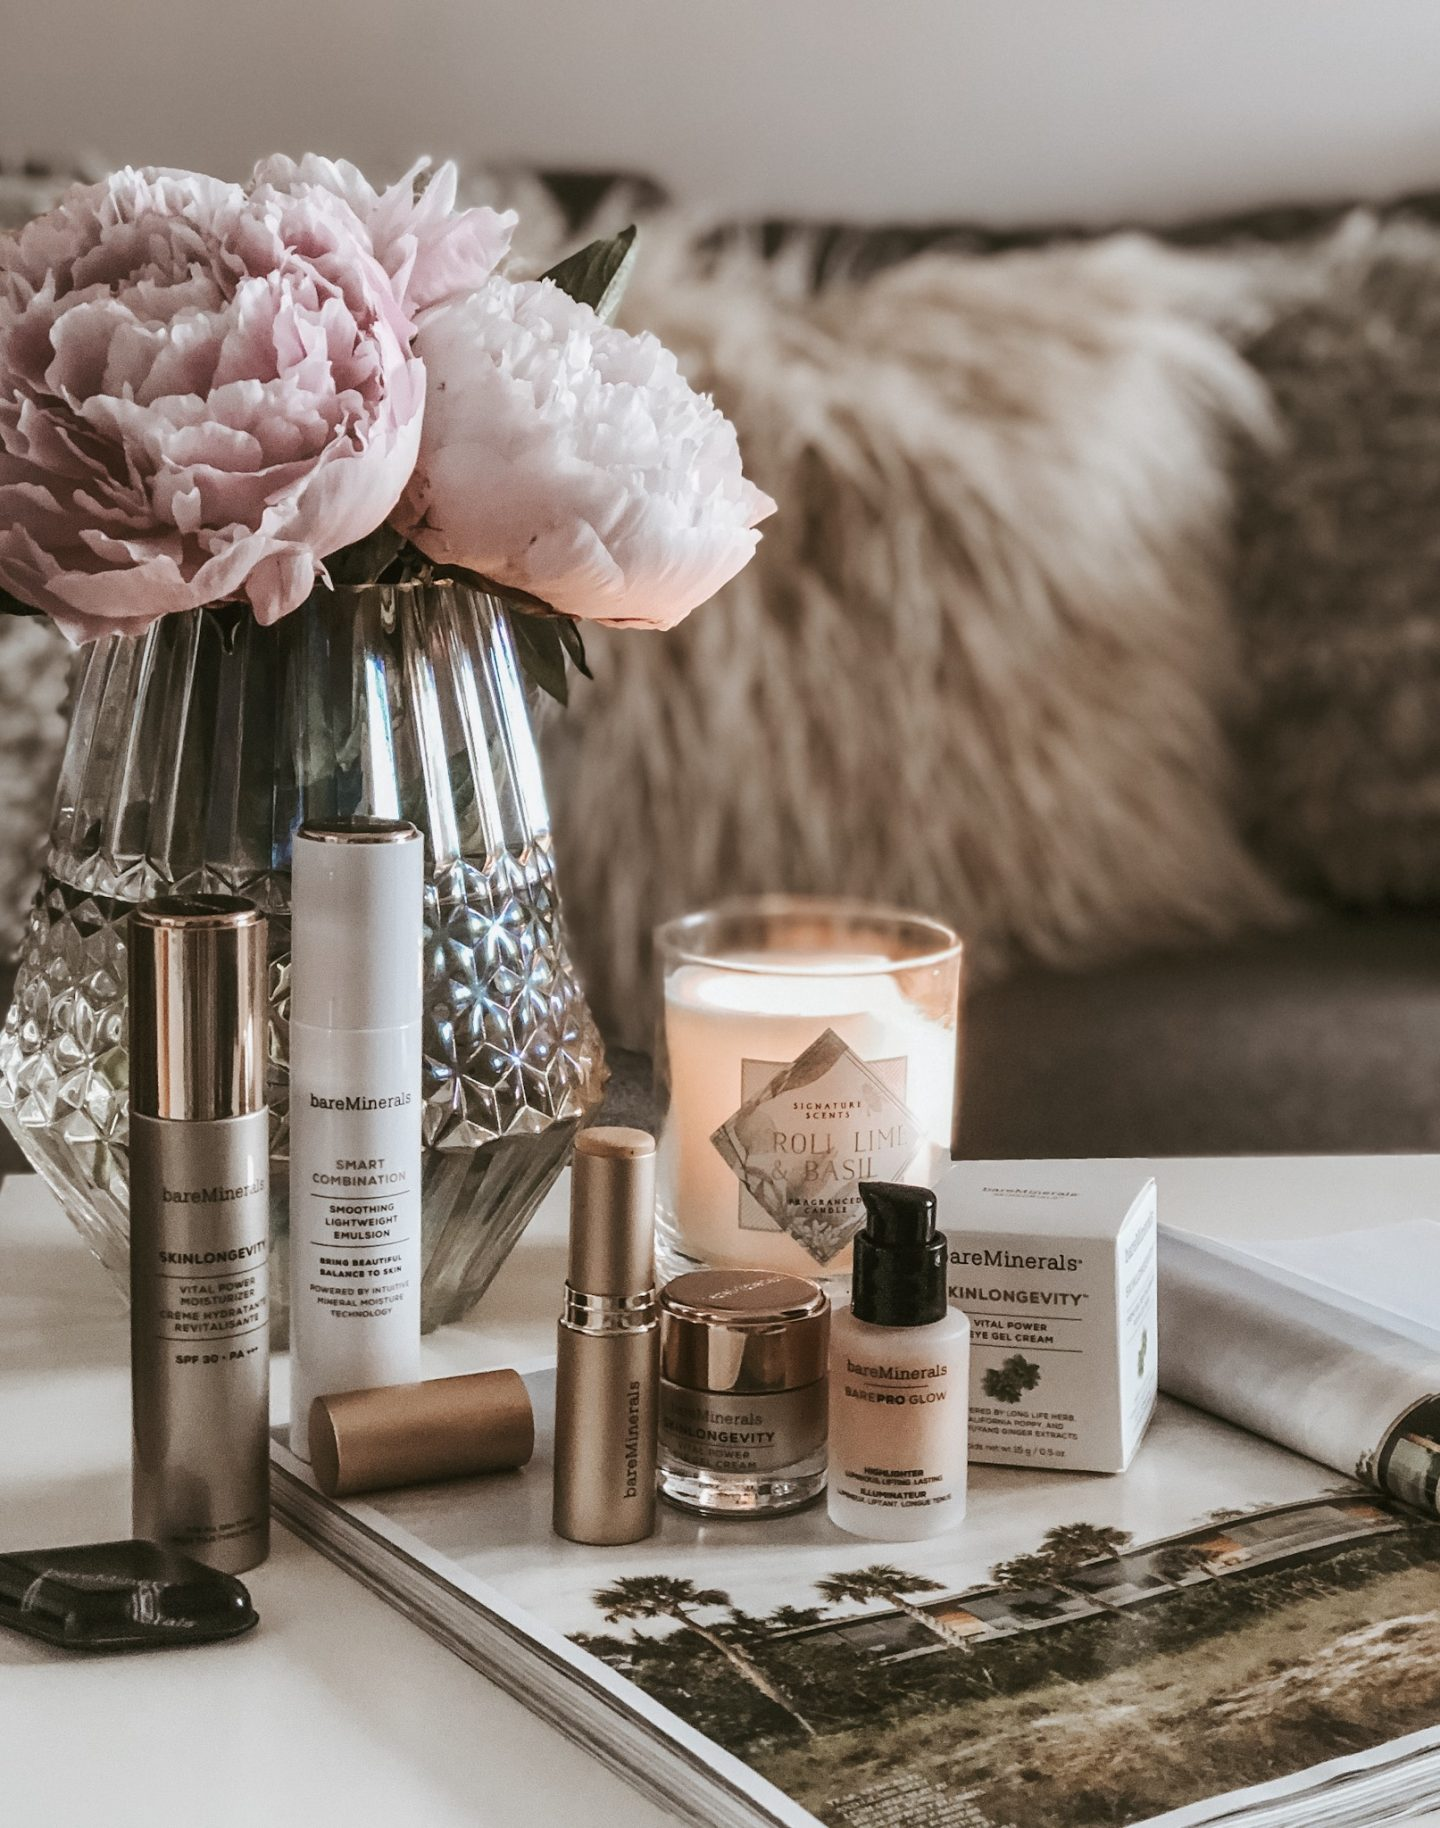 THE POWER OF GOOD SKIN WITH BAREMINERALS